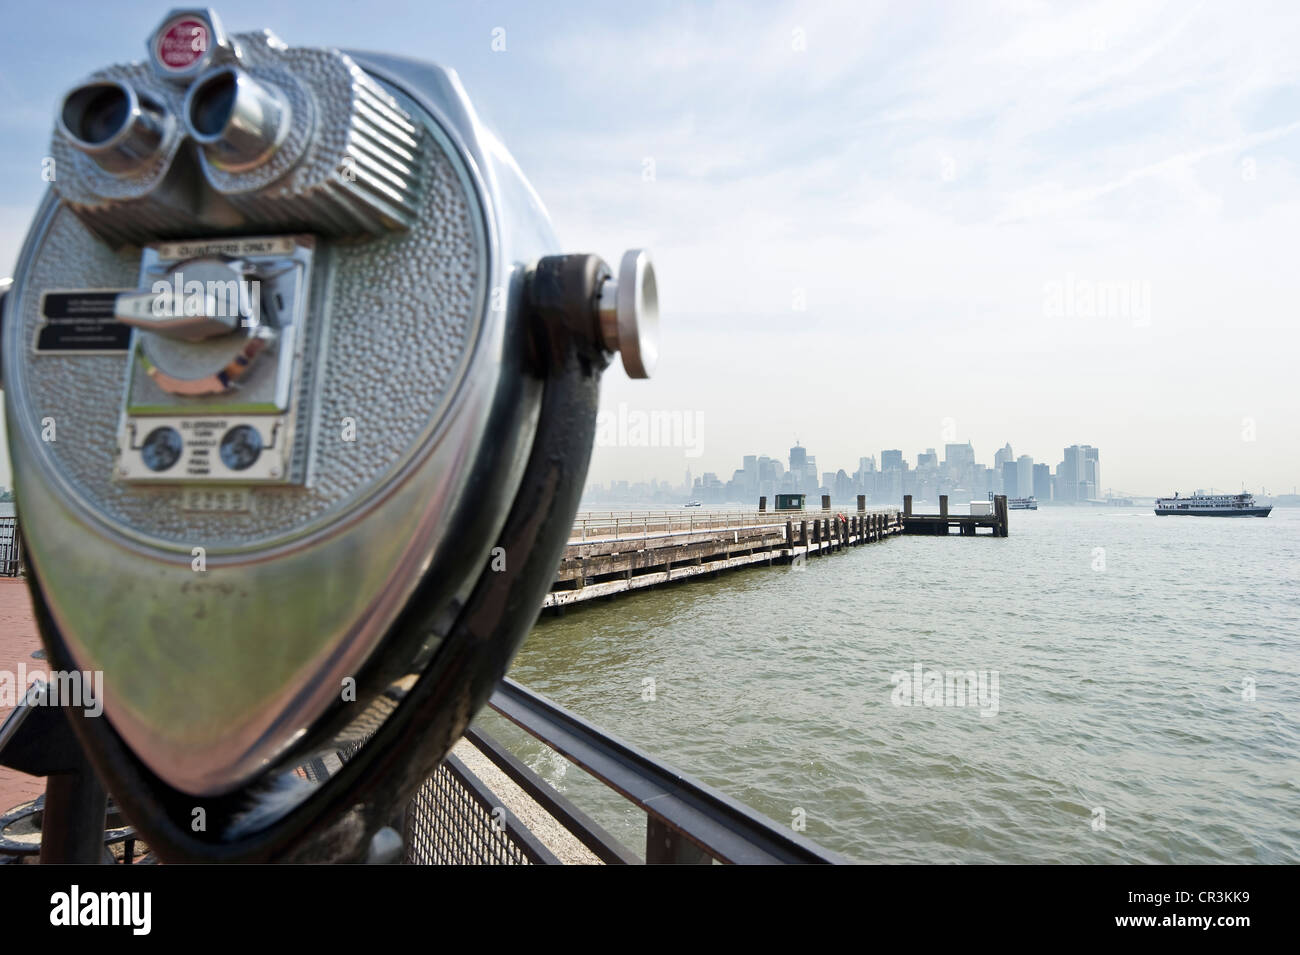 Telescope with a view of Liberty Island and the skyline of Manhattan, New York, USA - Stock Image